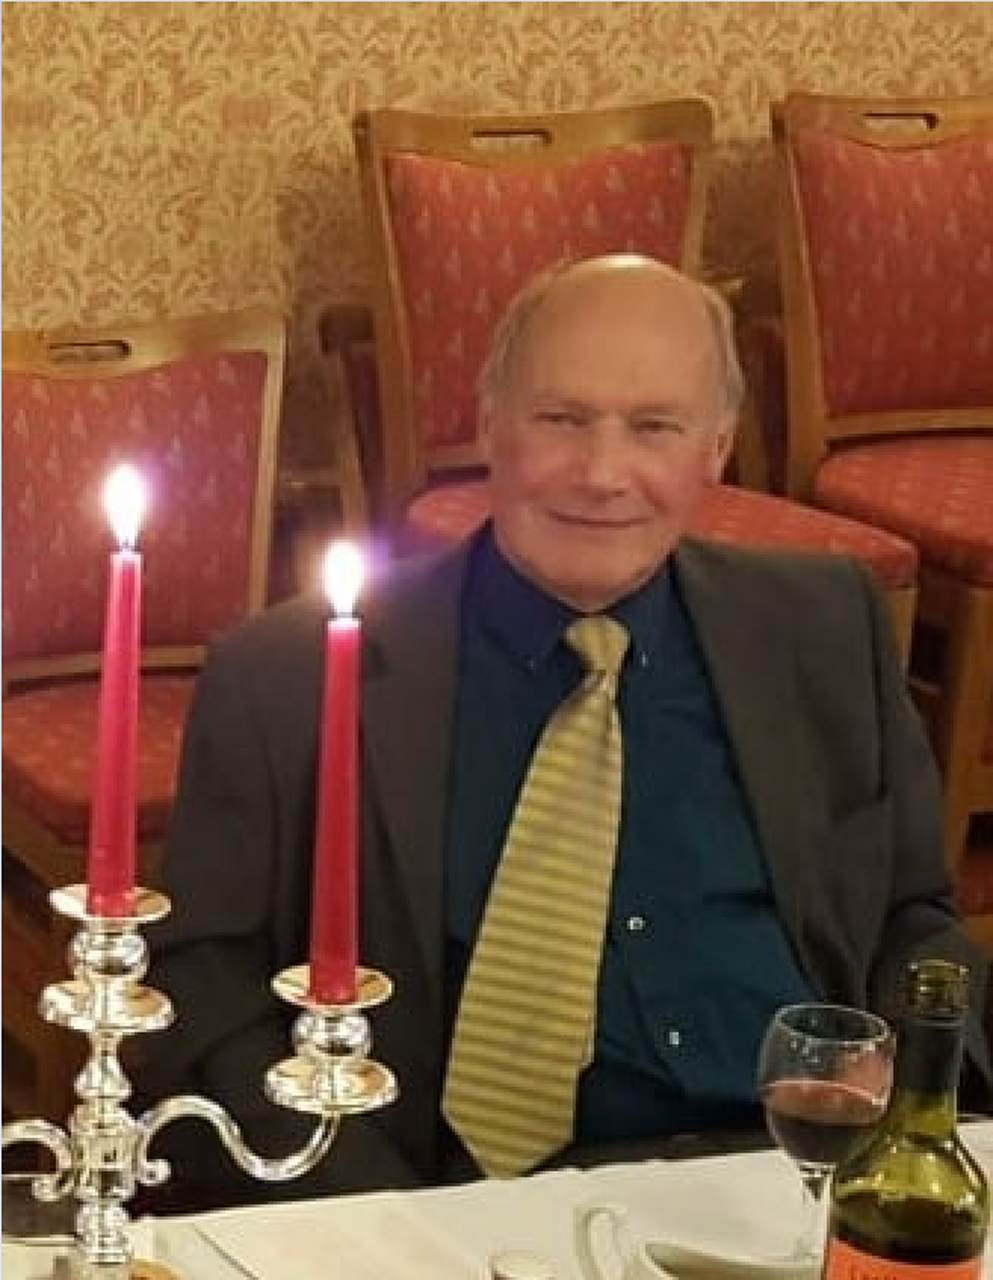 Freemason - I have to report the very sad passing of Worshipful Brother Peter Cook, at his home last night